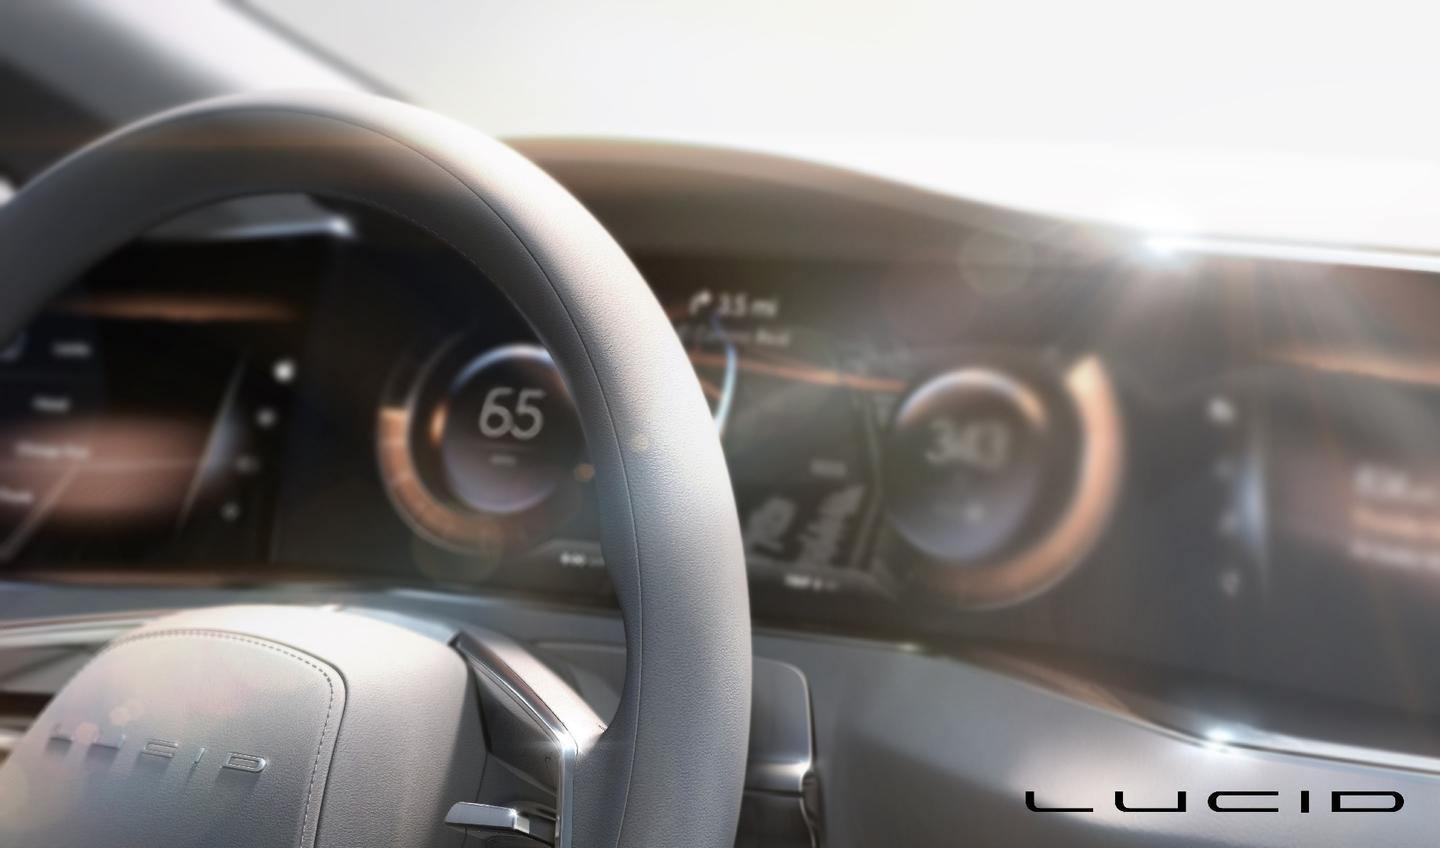 Lucid Motors' upcoming luxury EV: AMOLED screens make up the dash